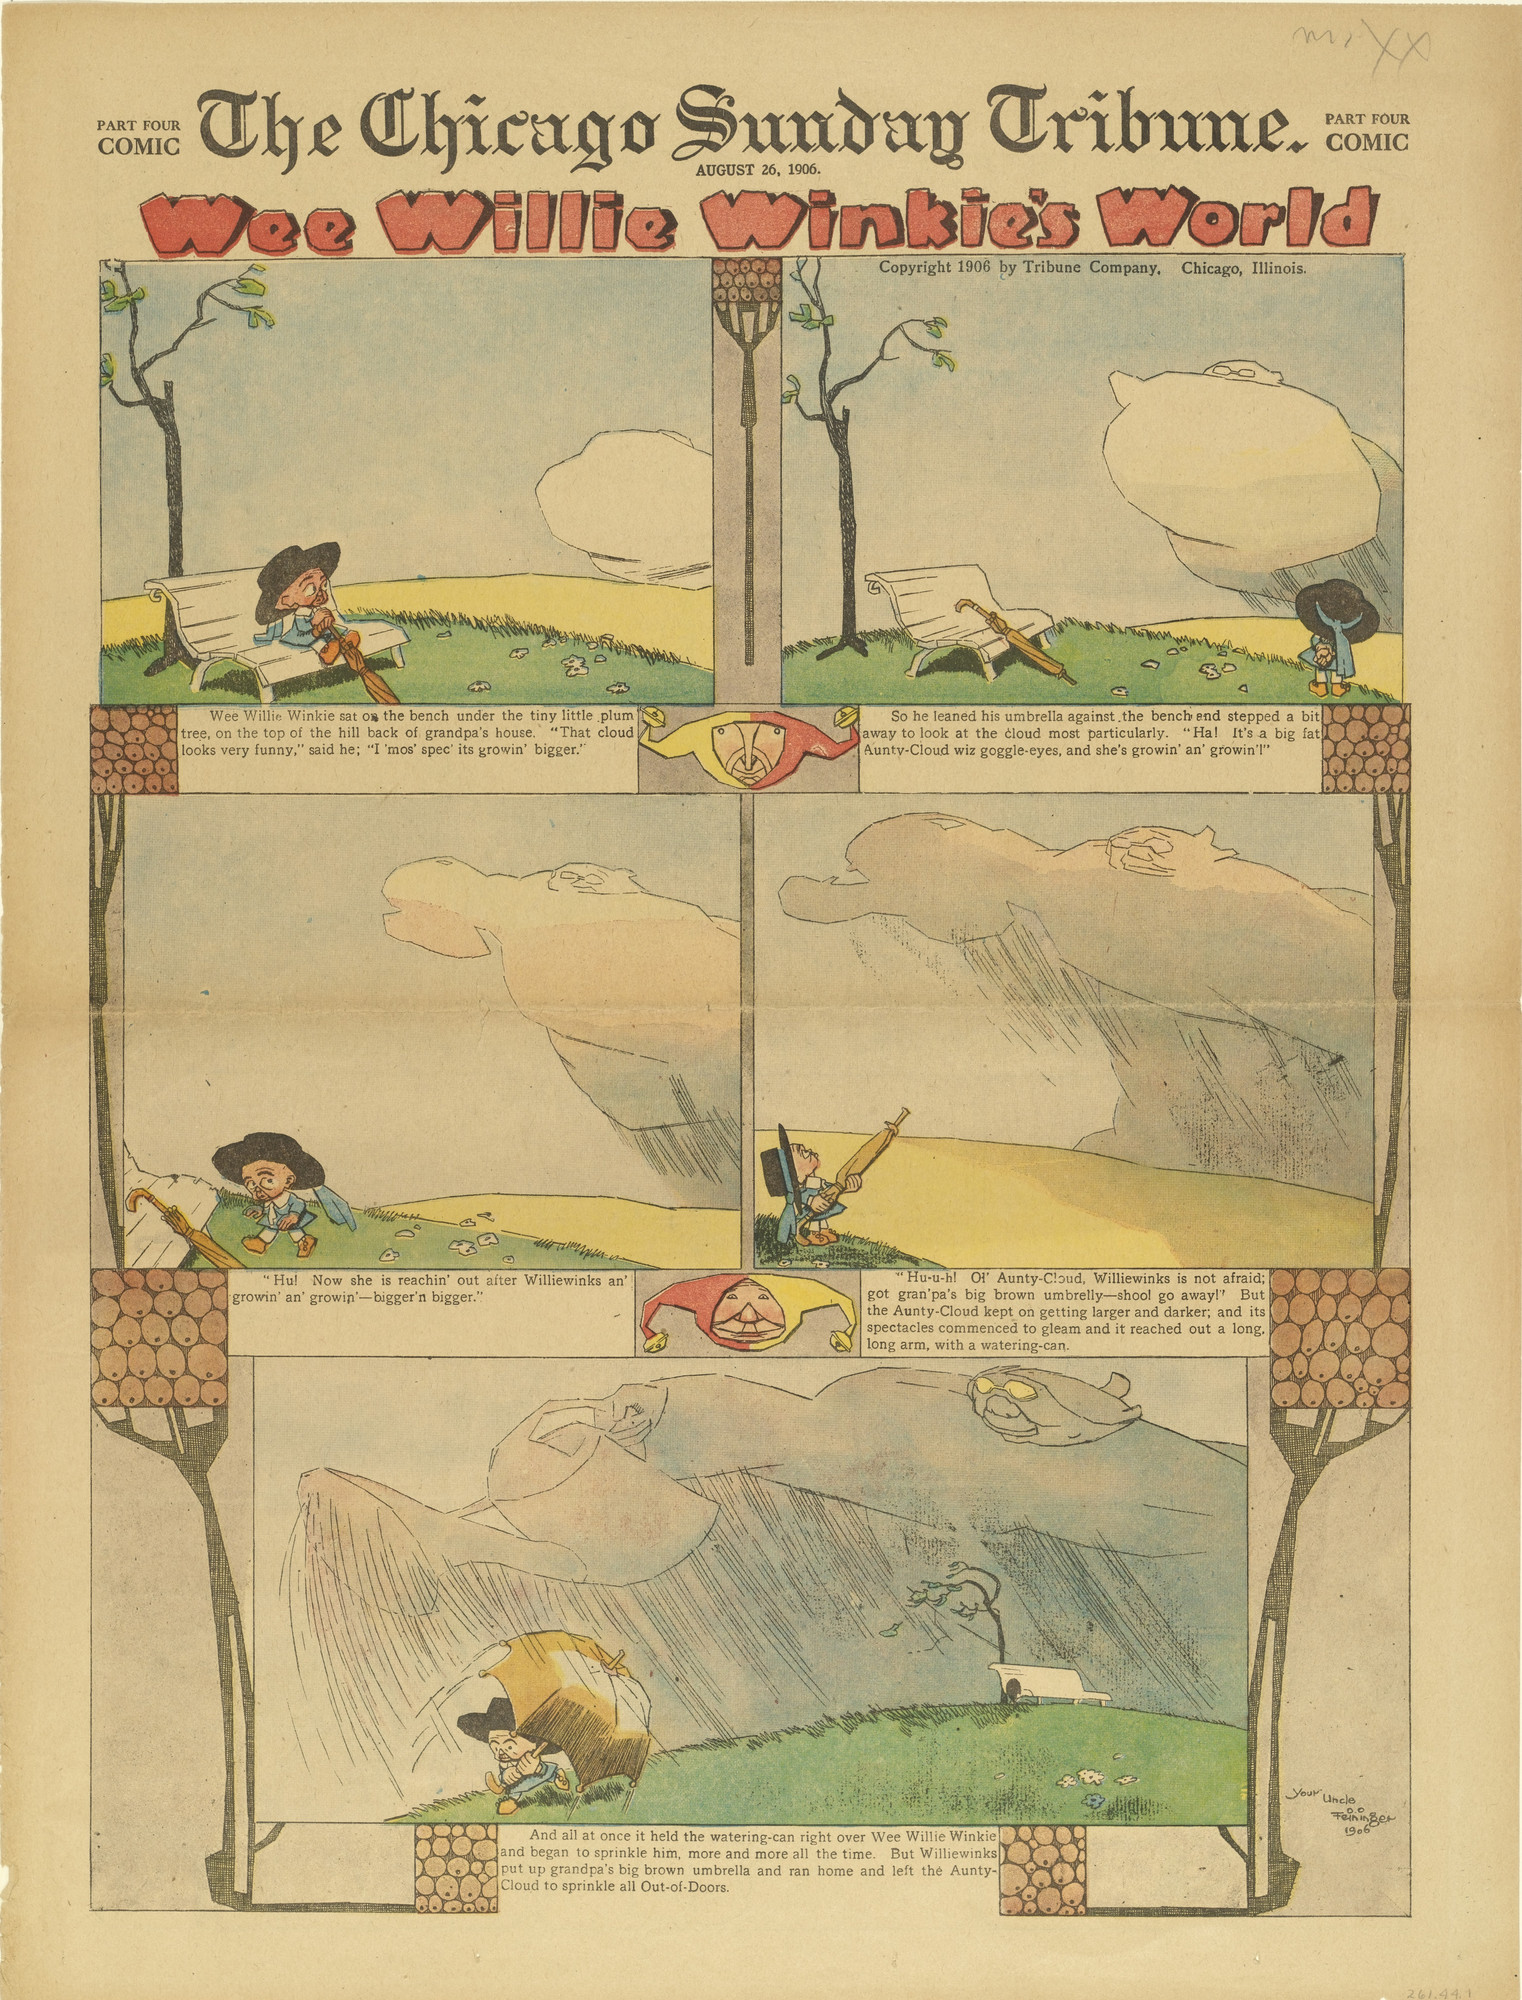 Lyonel Feininger. Wee Willie Winkie's World from The Chicago Sunday Tribune. August 26, 1906